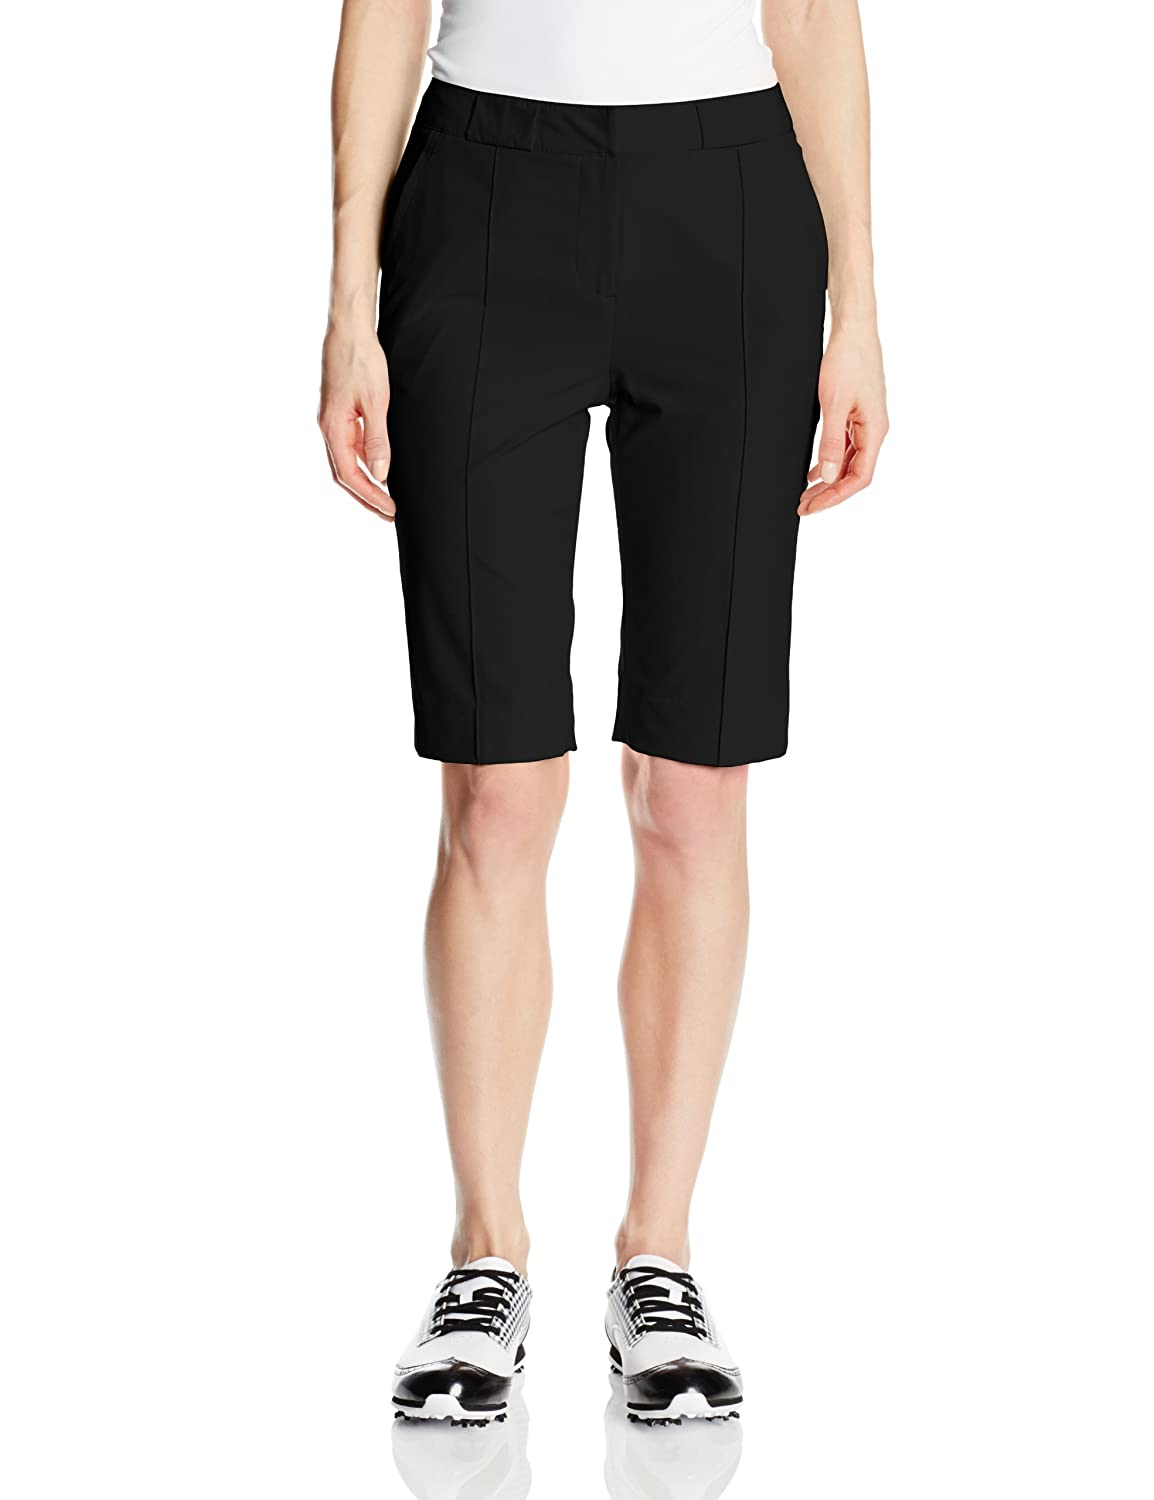 Cutter & Buck Women's Drytech Pin Tuck Short LCB04662